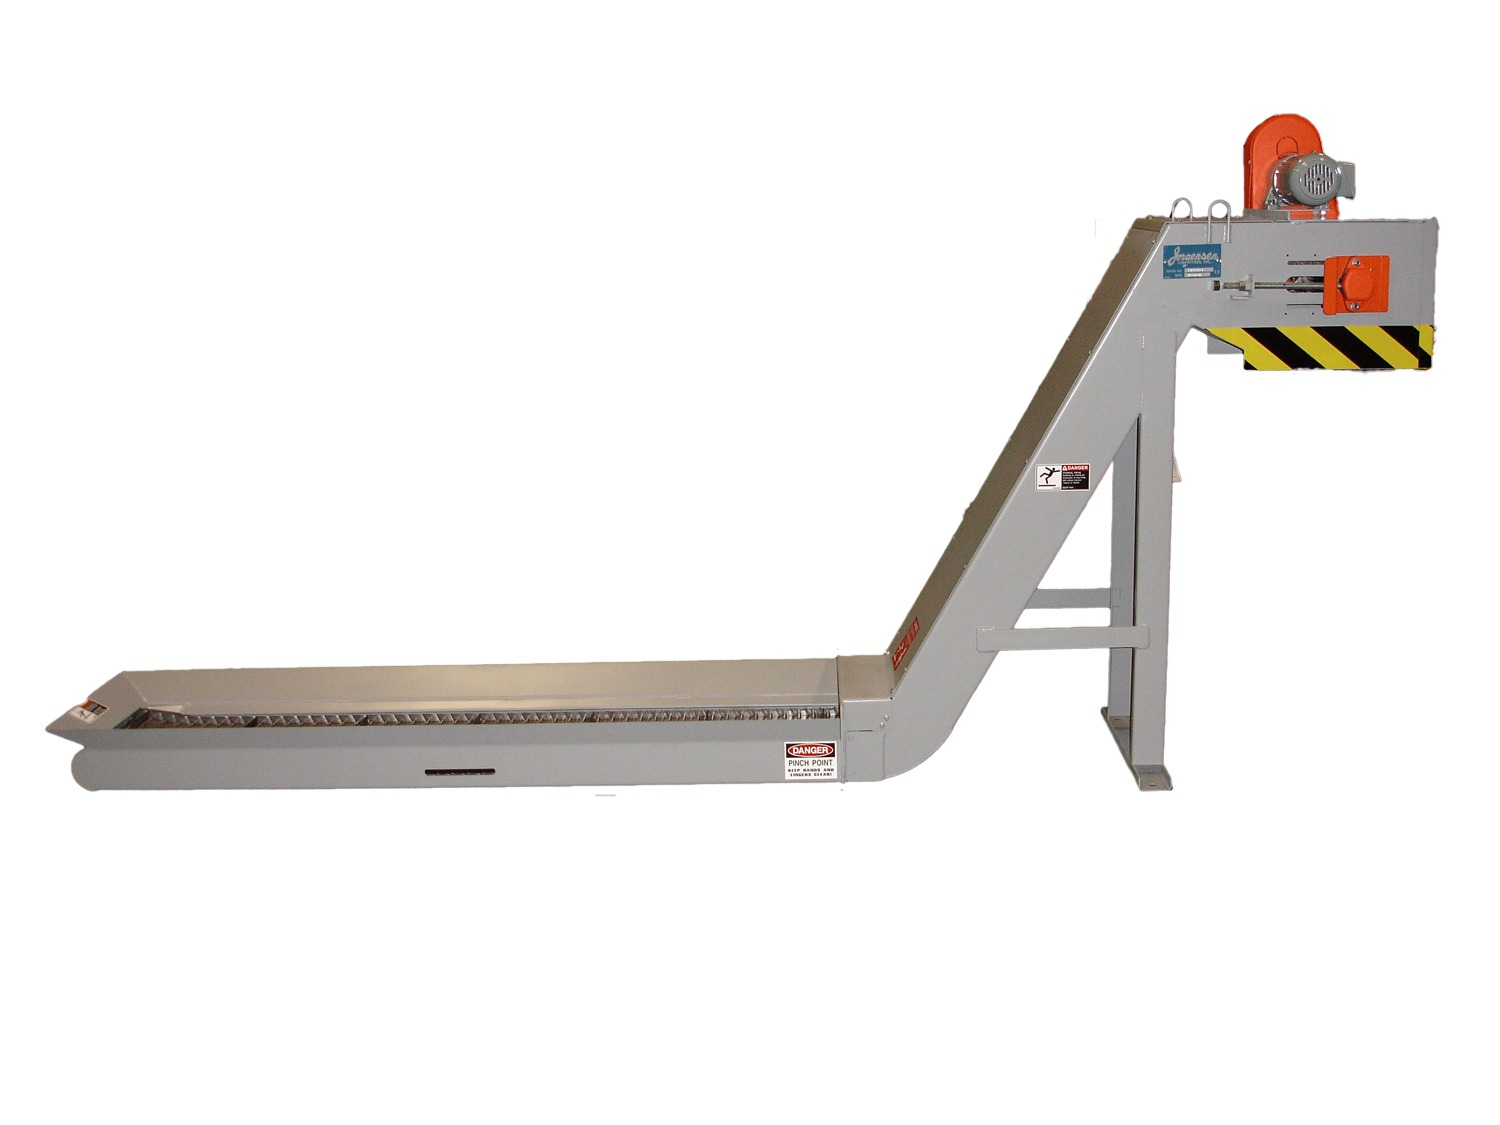 Surplus Conveyor discounted price